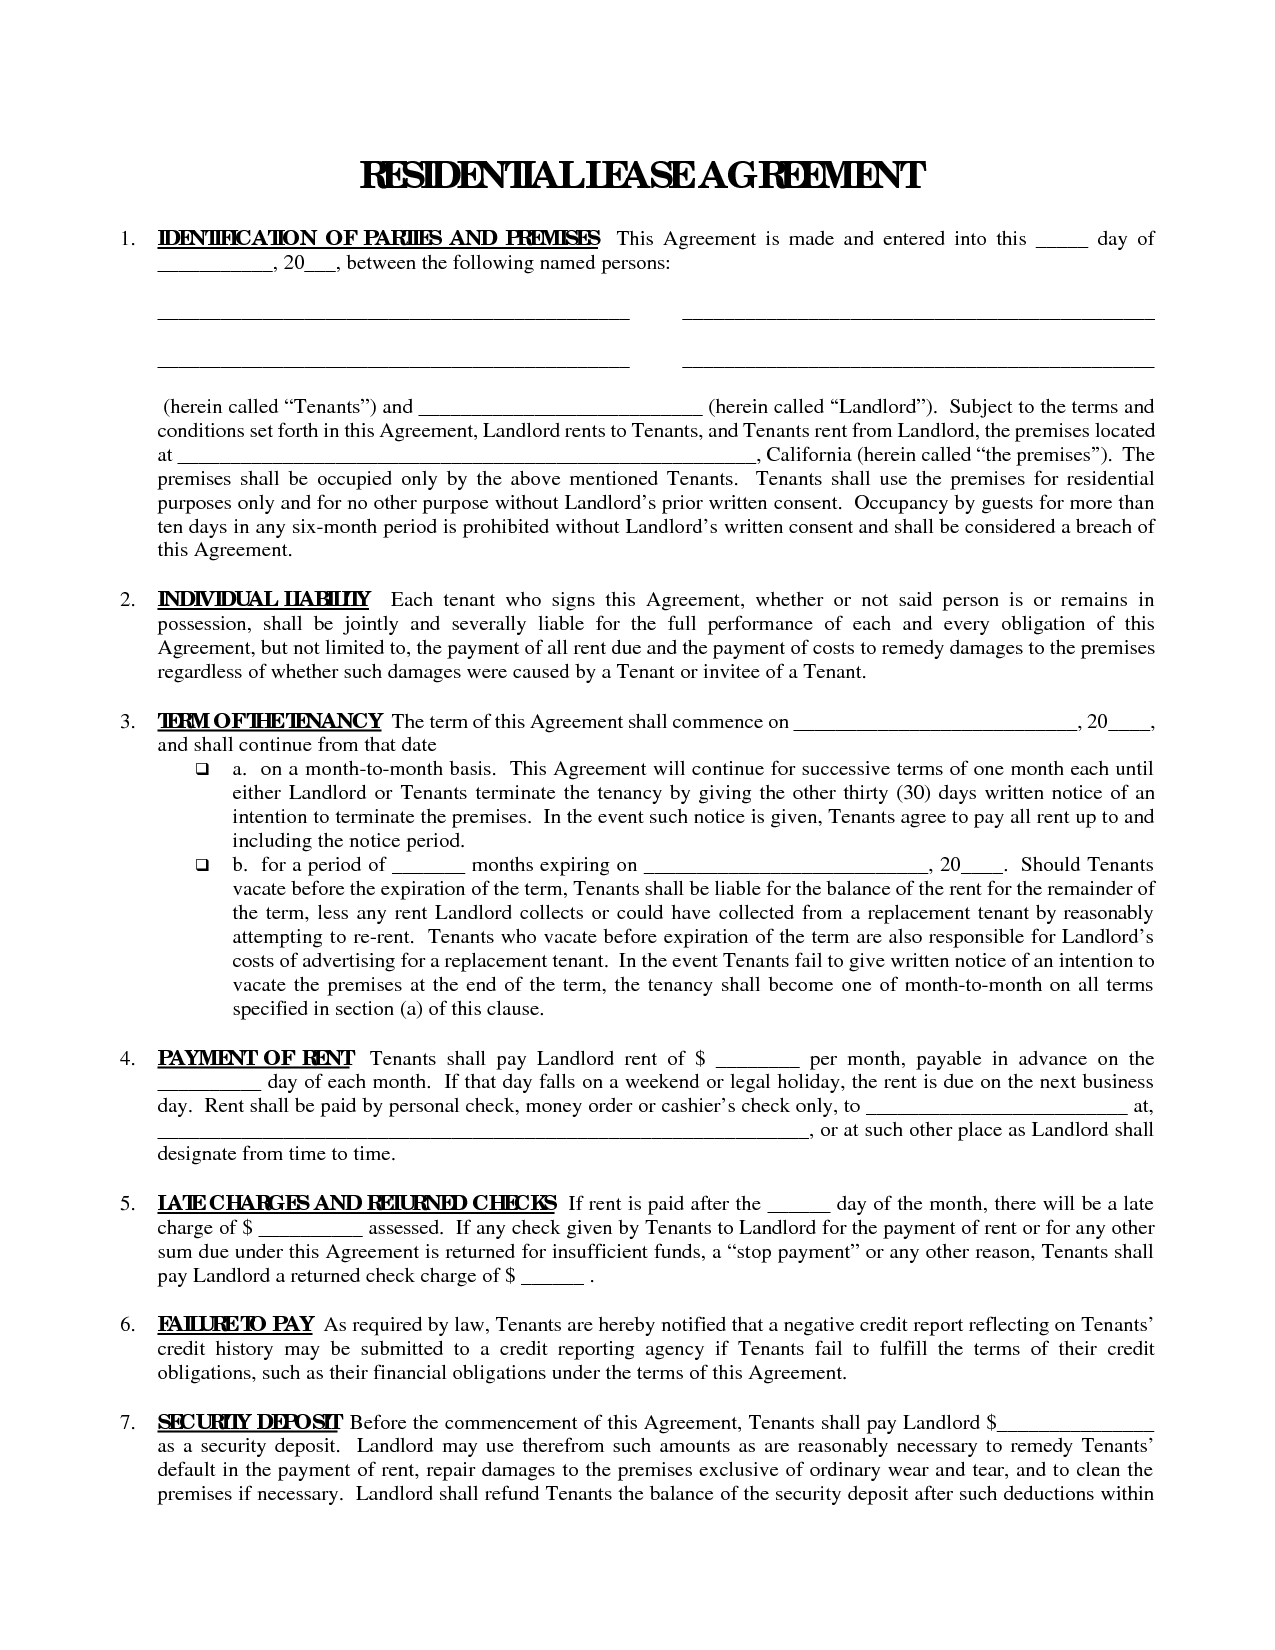 Printable Residential Free House Lease Agreement | Residential Lease  Agreement: Real Estate Legal Form  Free Lease Agreements Templates